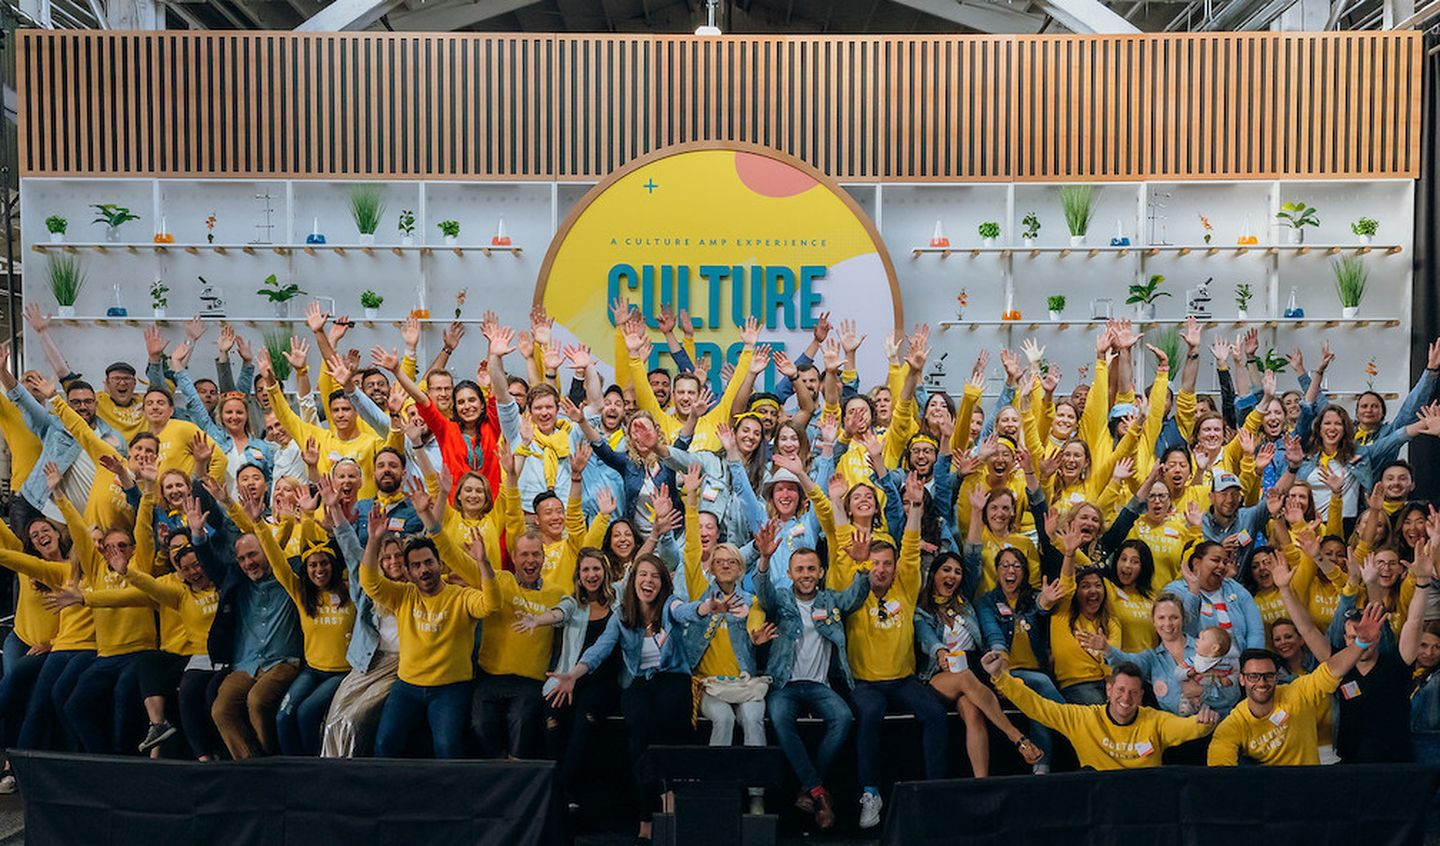 Culture first group